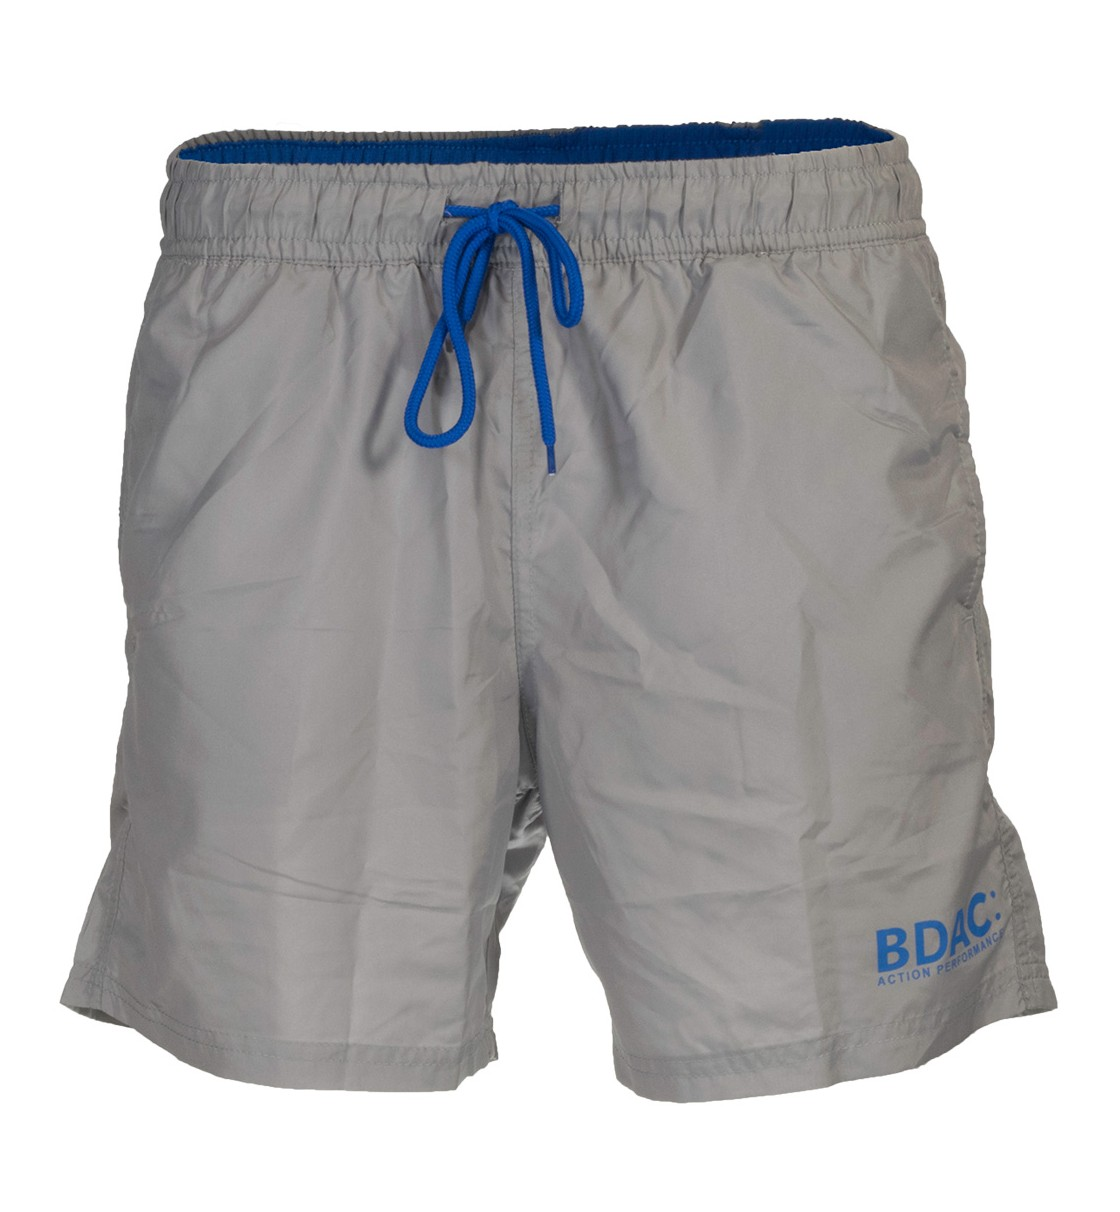 Body Action MEN RUNNING SHORTS